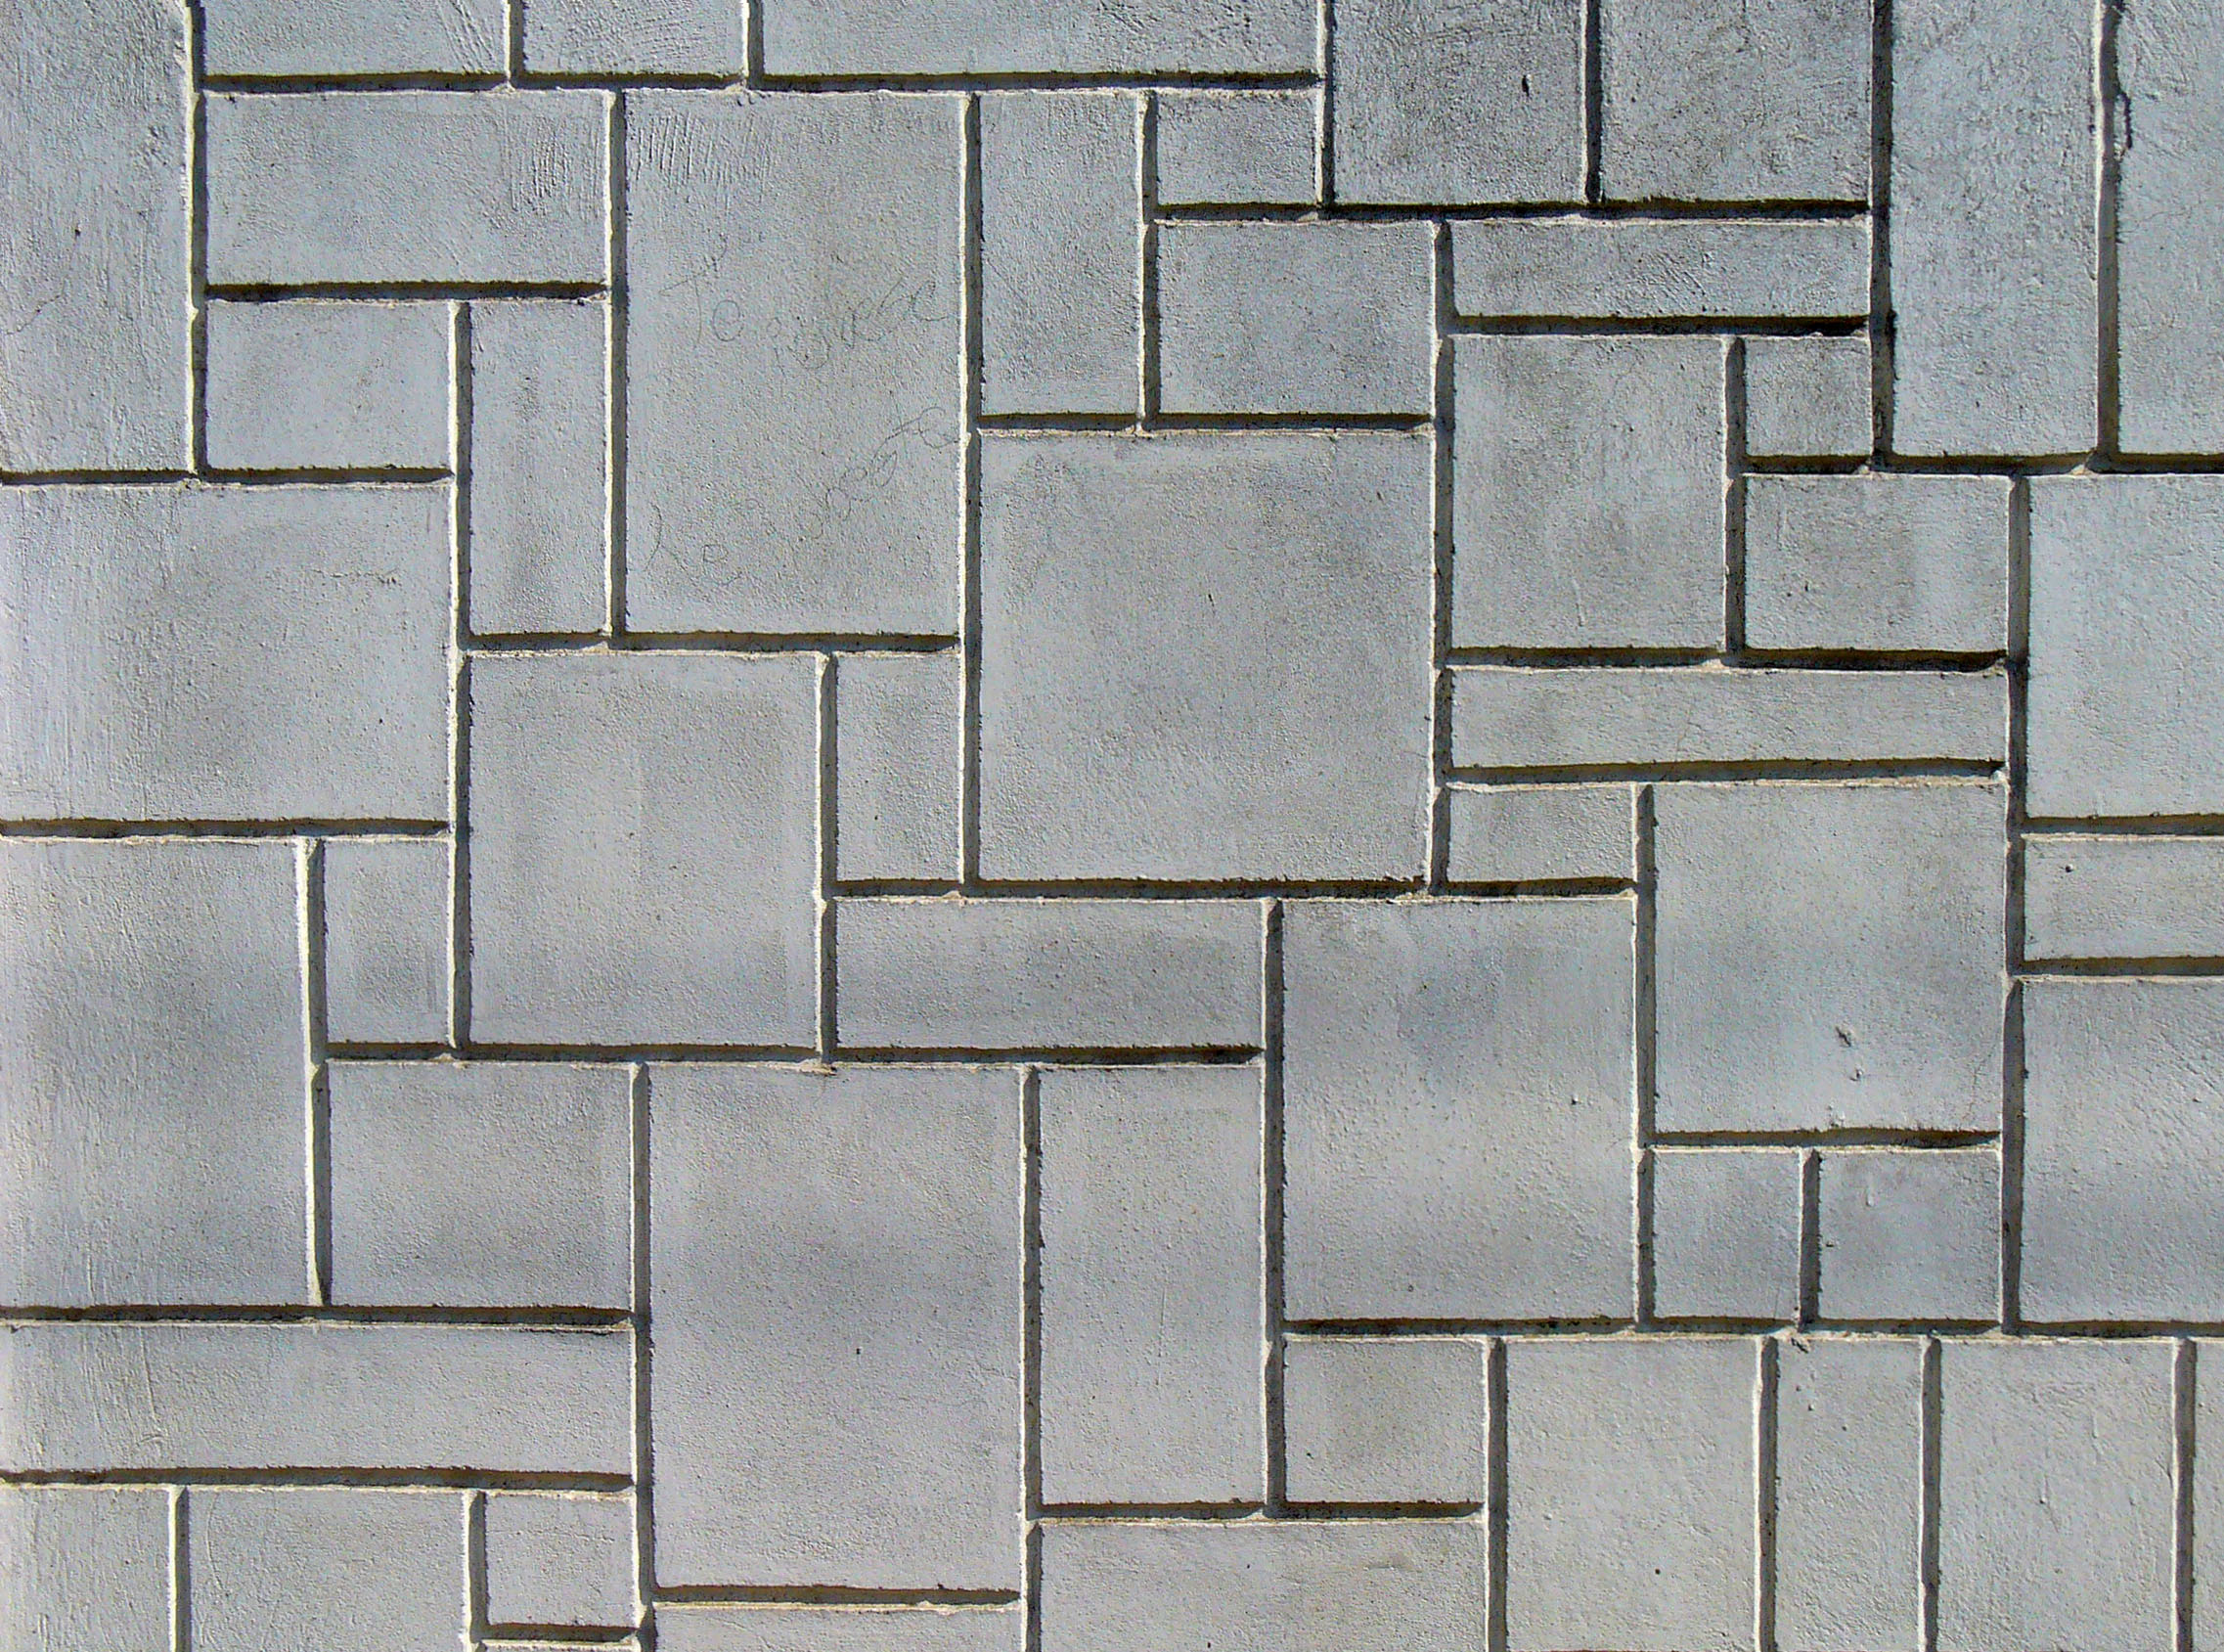 Concrete pattern wall texture download free textures